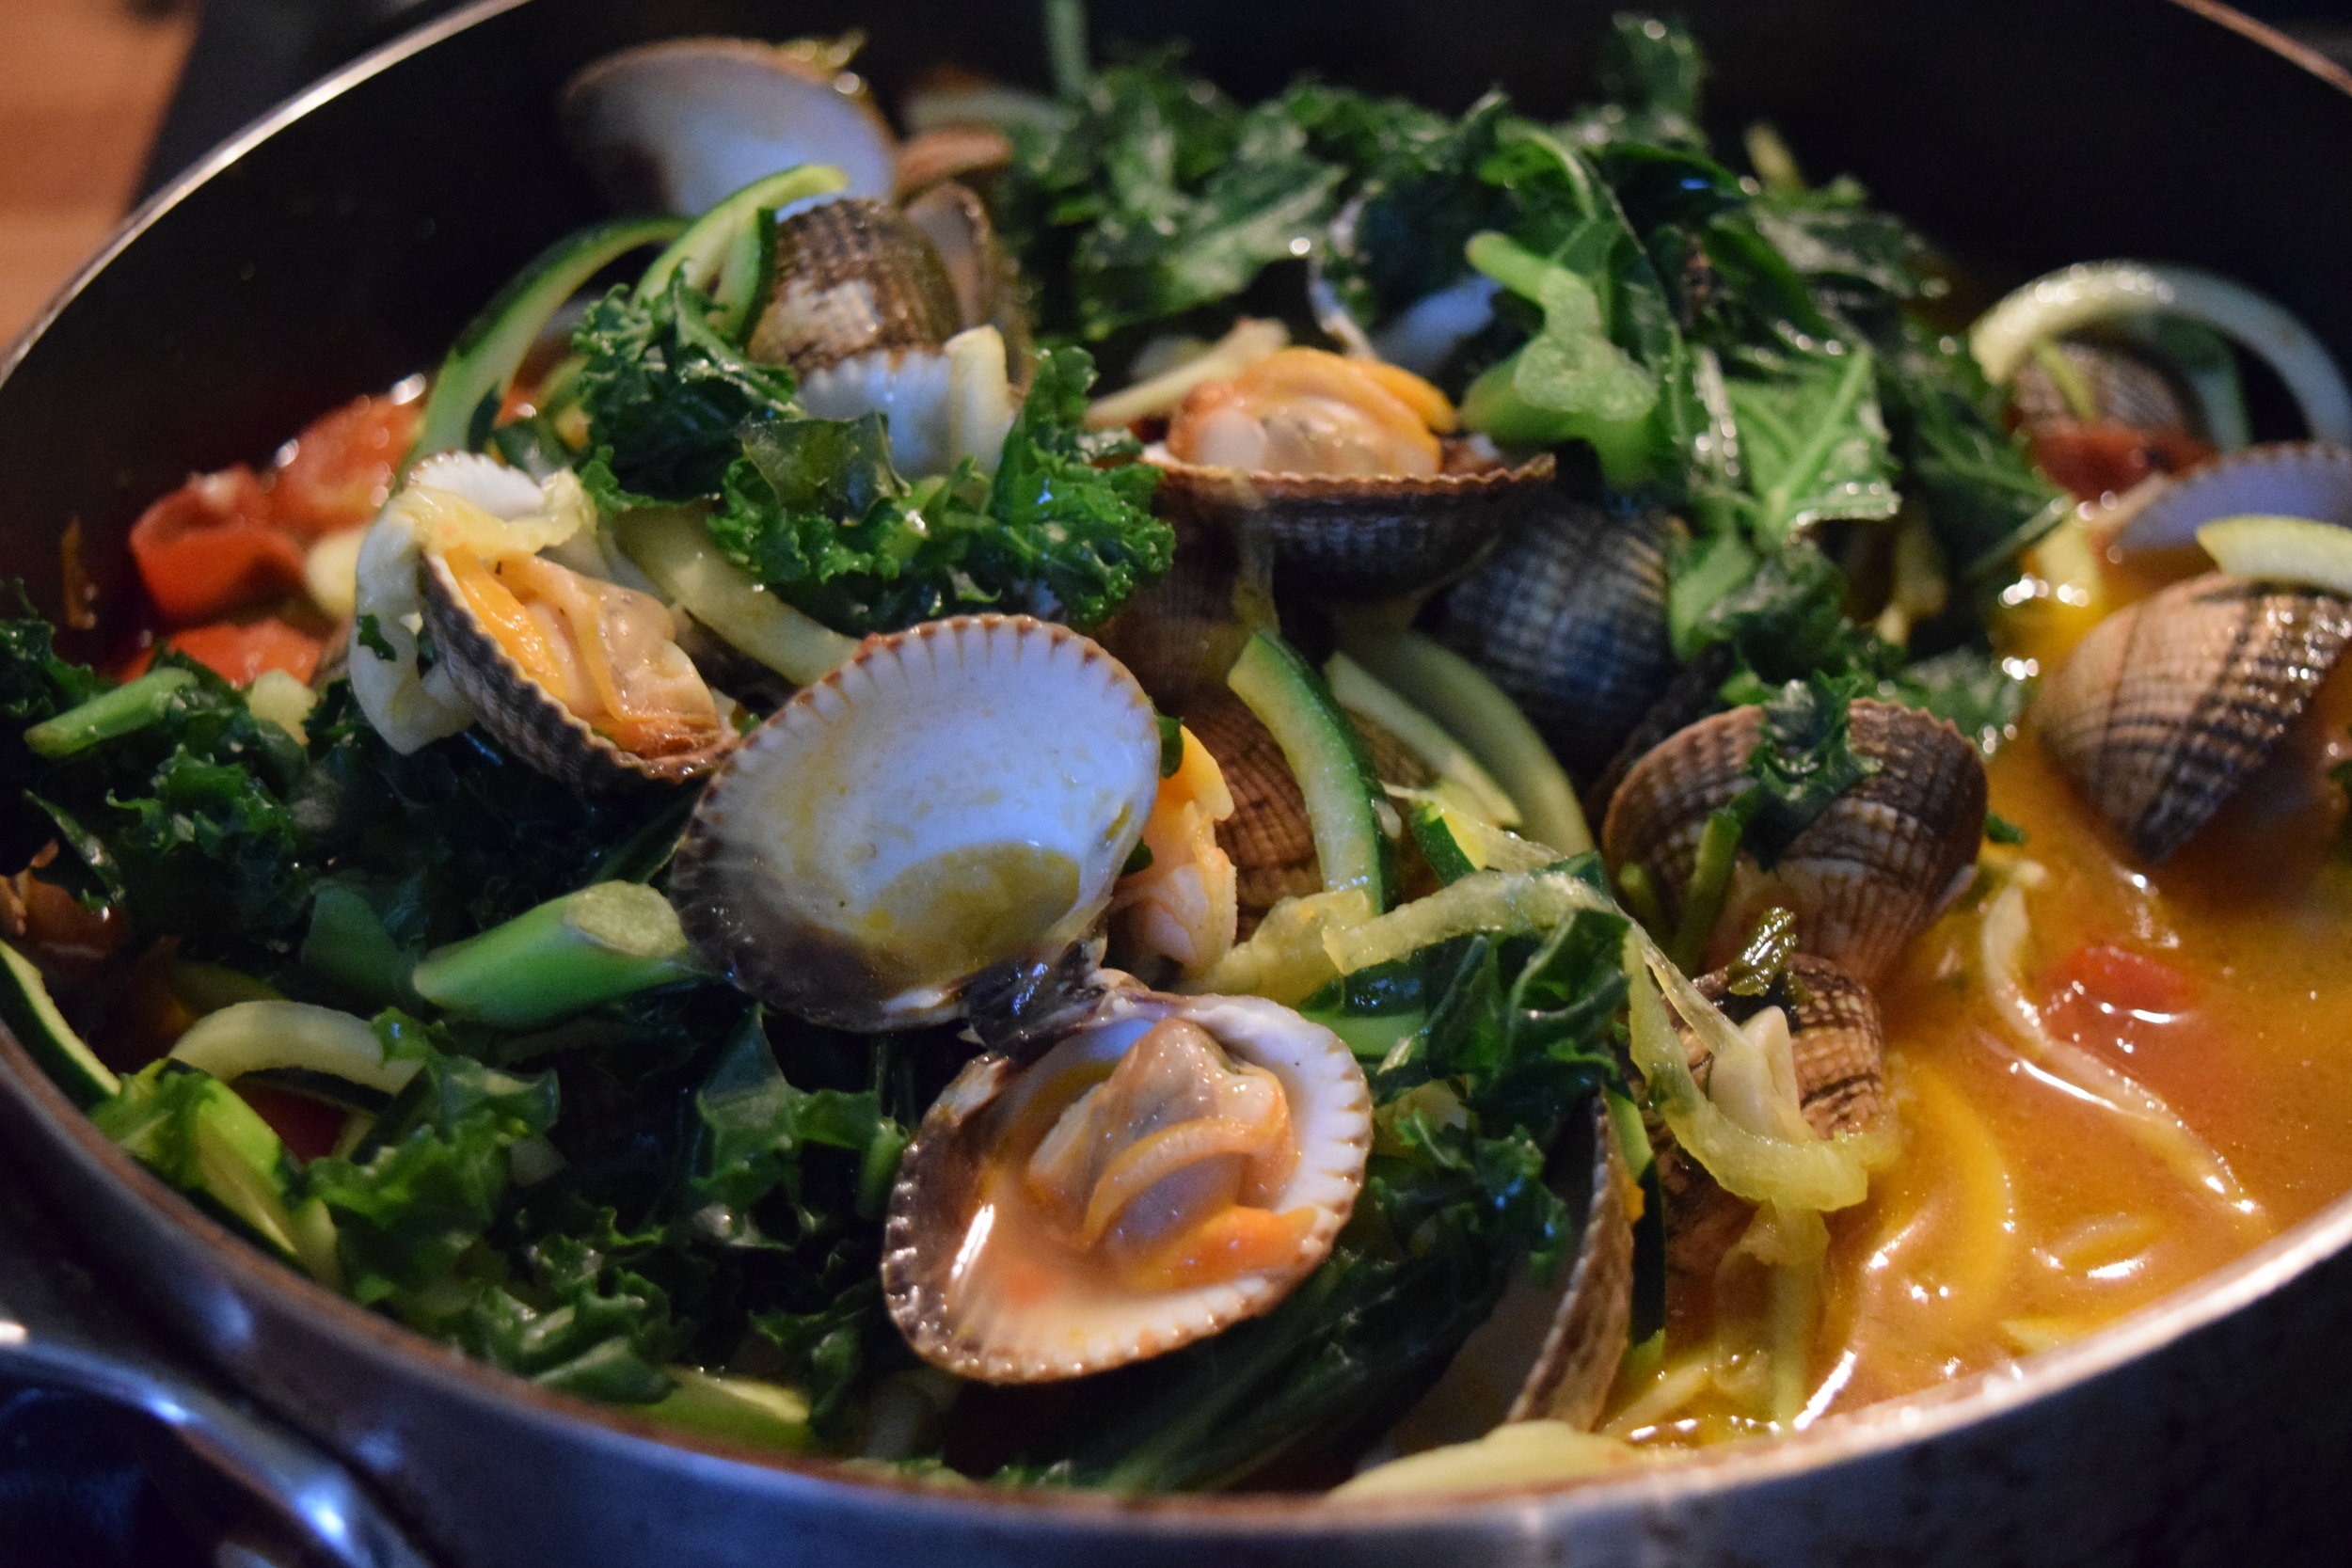 Cockles with kale and linguine